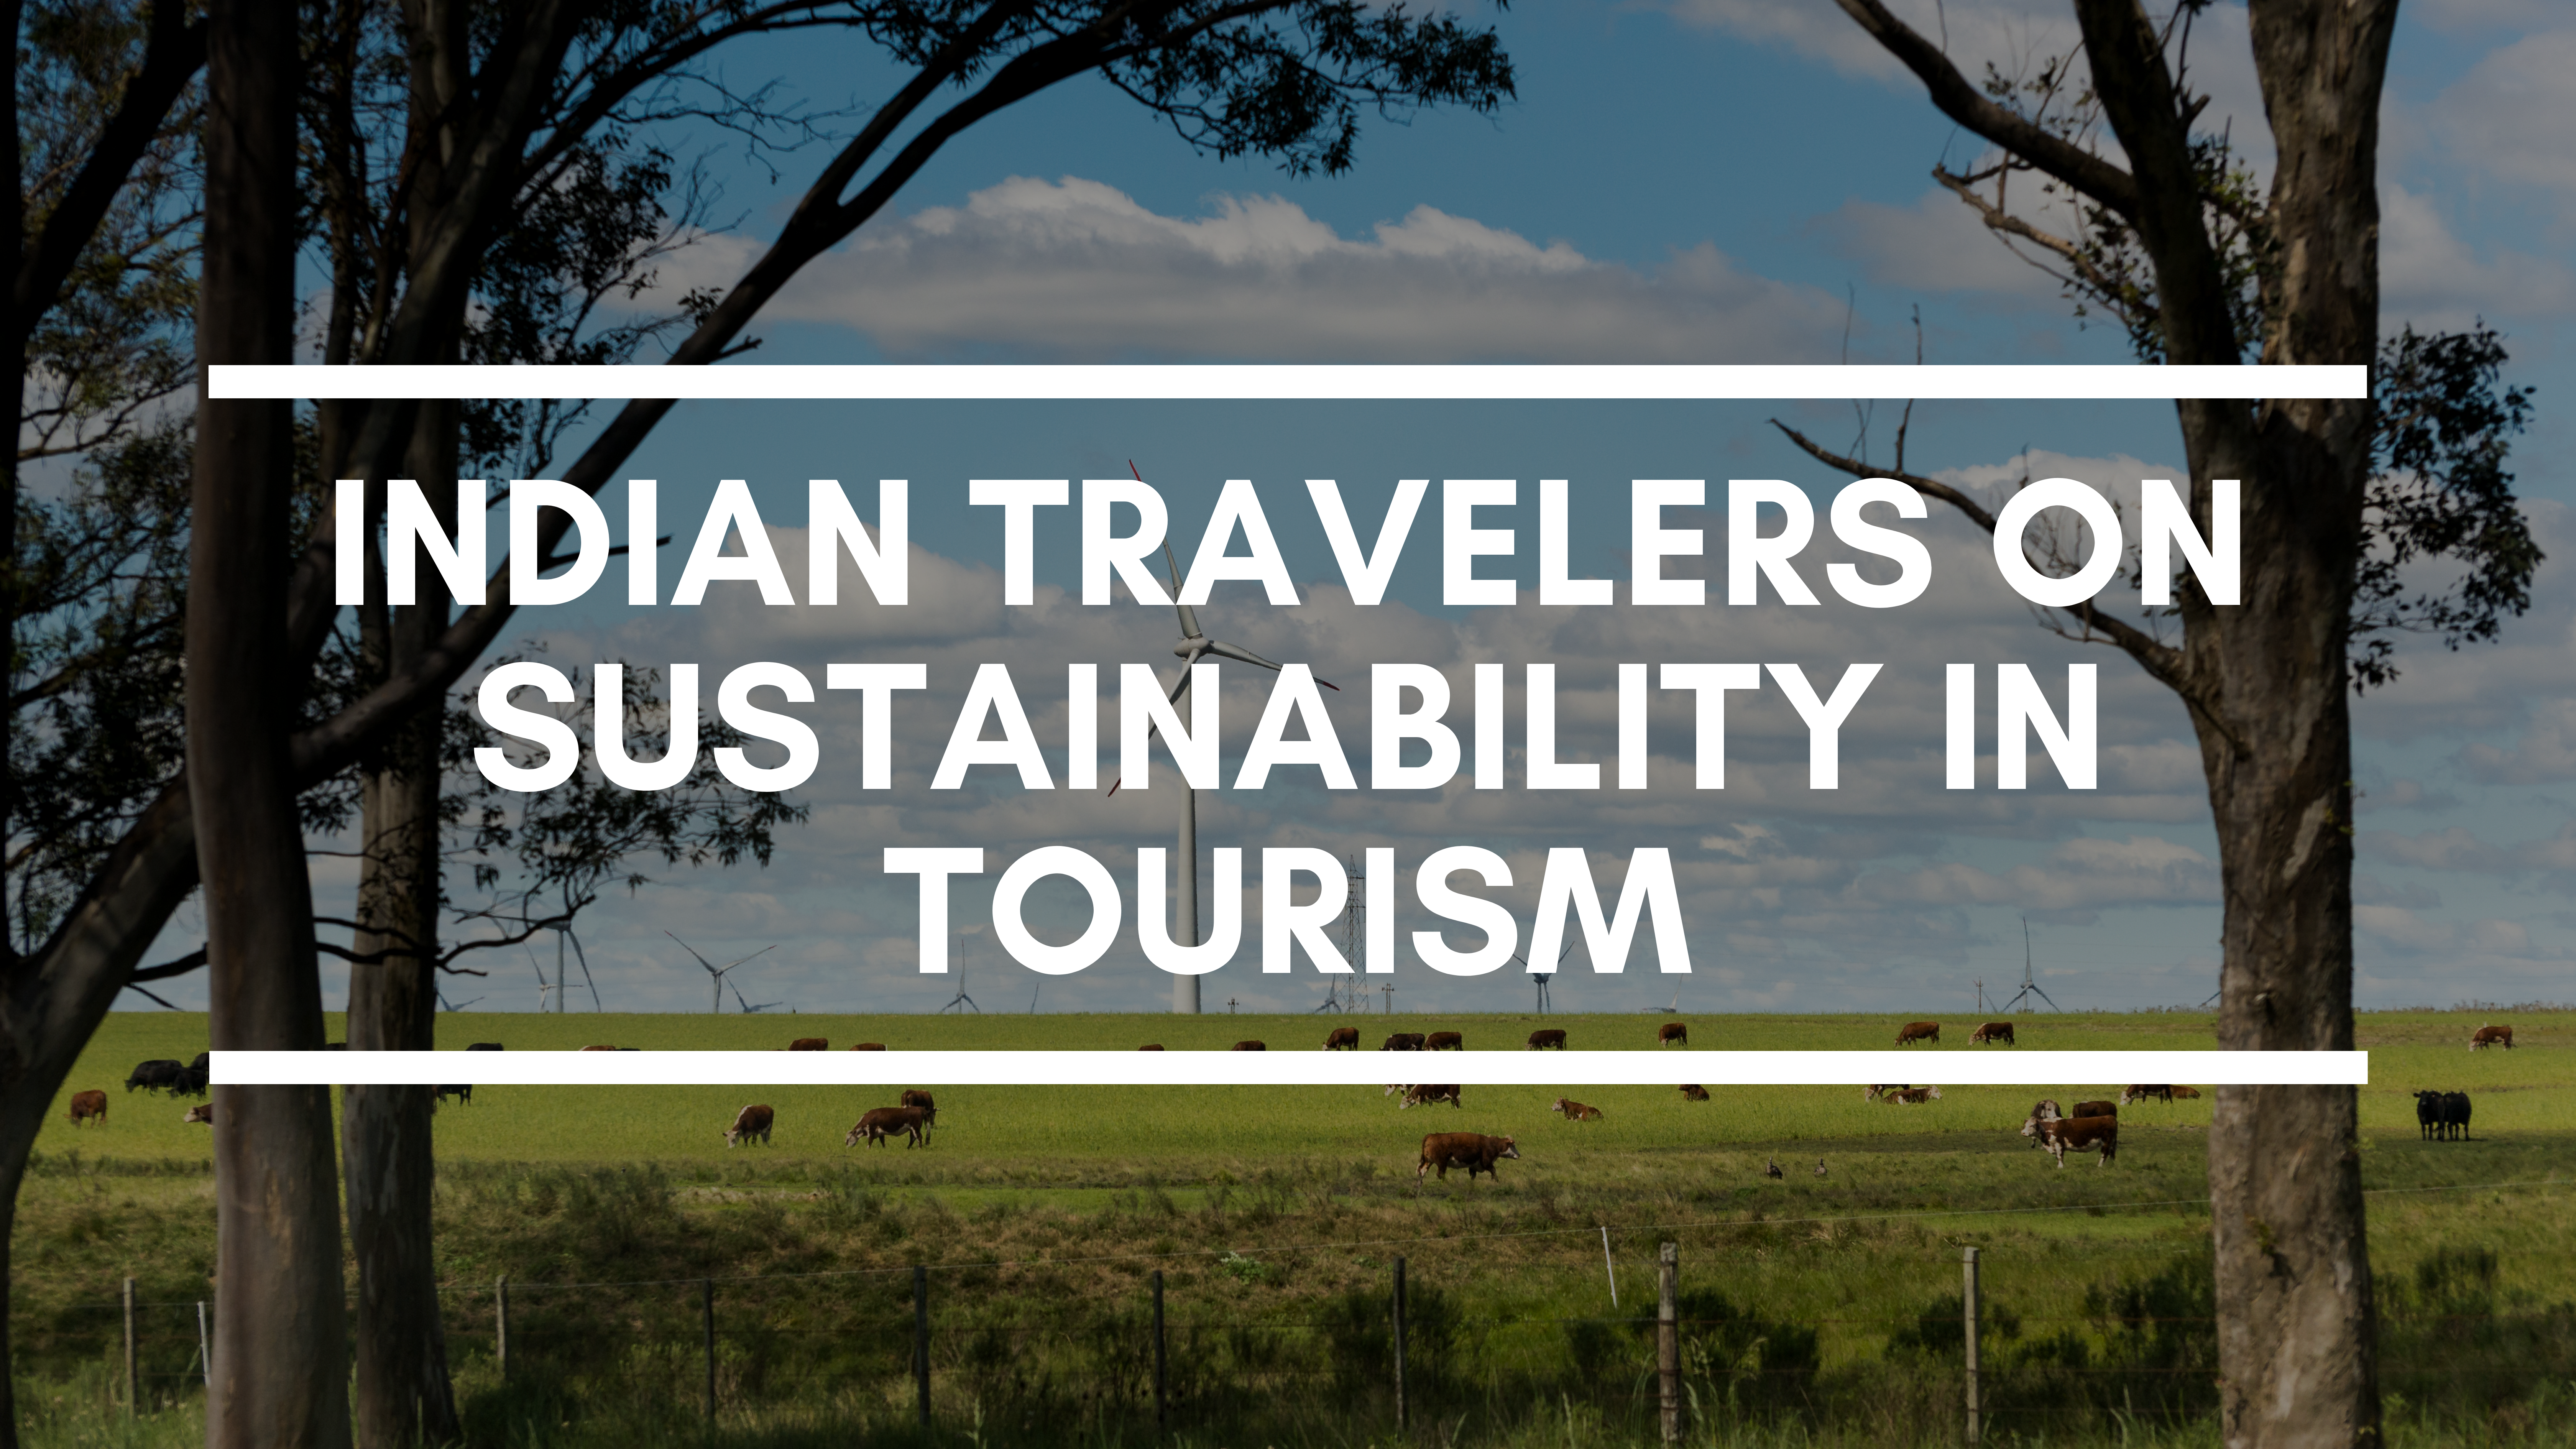 Indian Travelers on Sustainability in Tourism